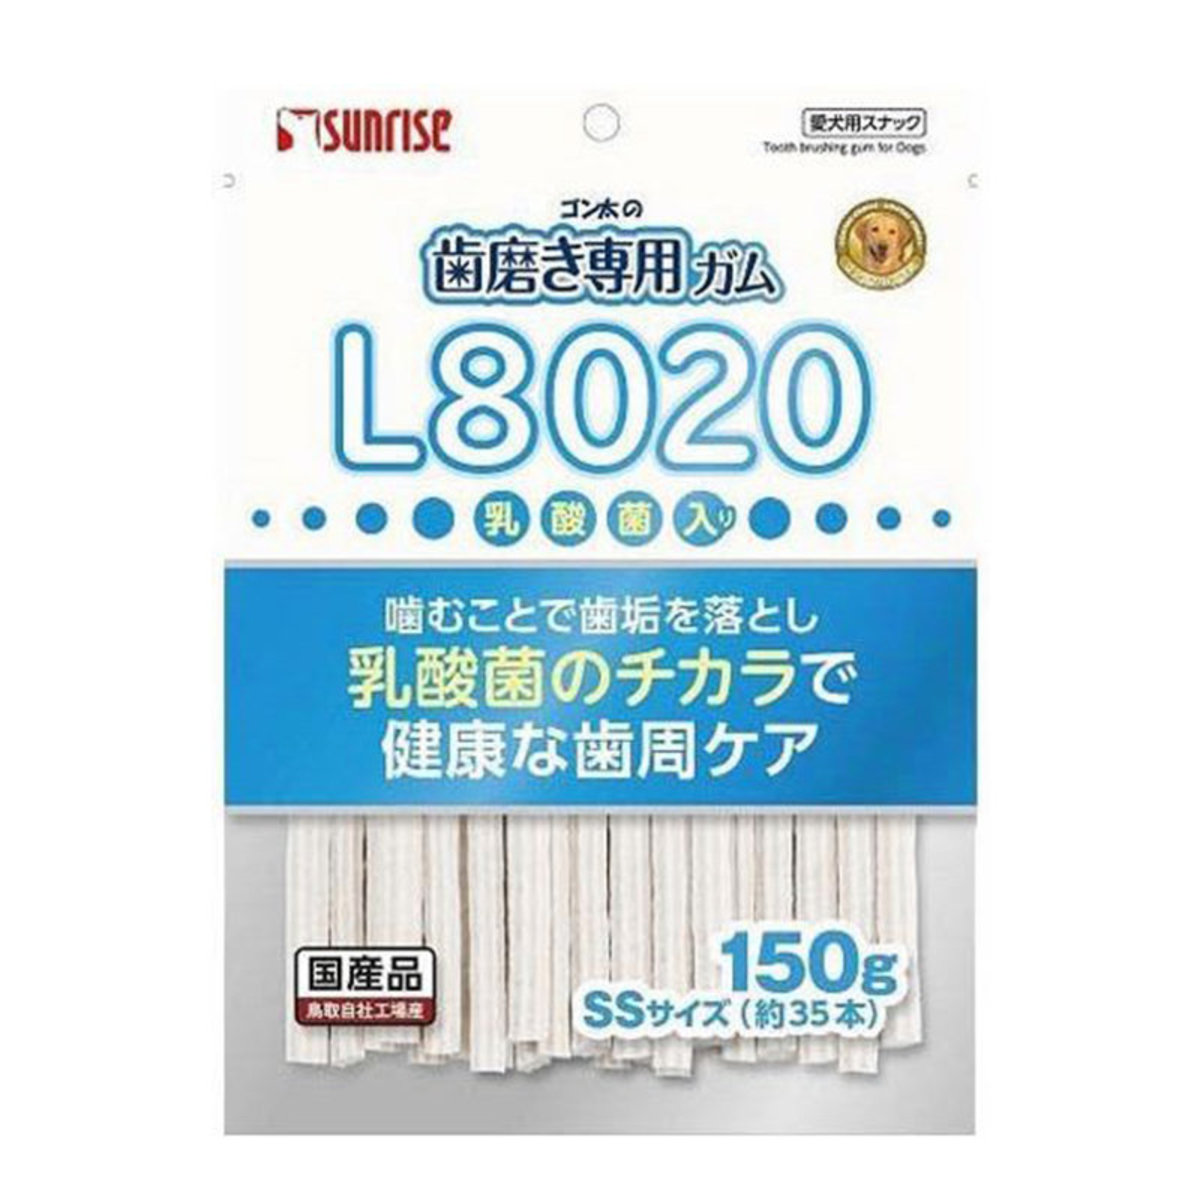 SHG-043 Soft type toothpaste chewing gum with L8020 150g